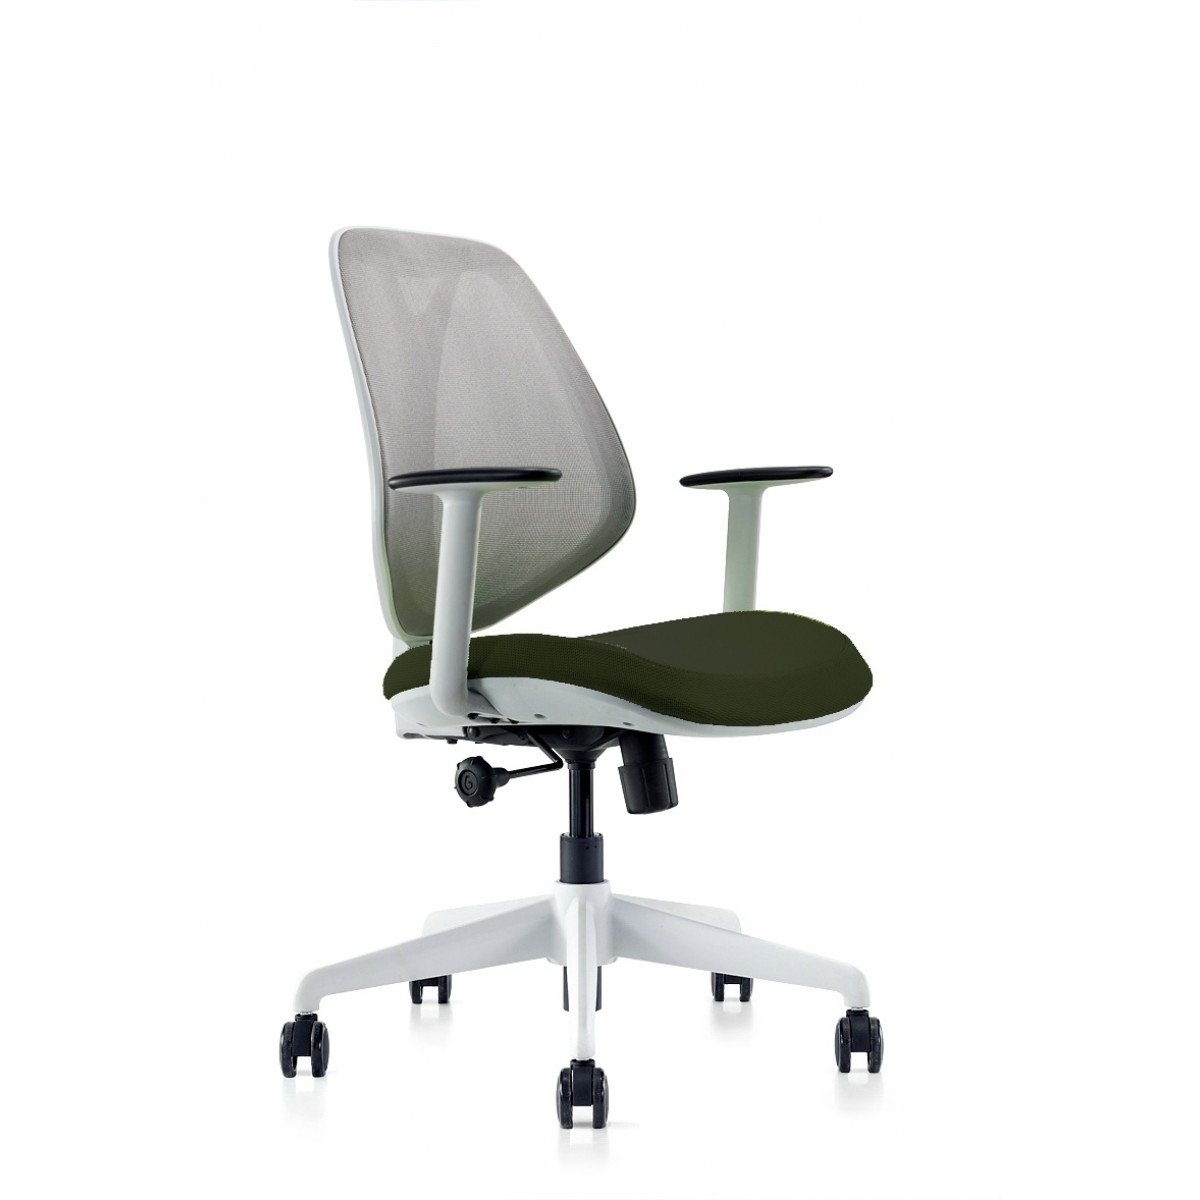 Omin Series Ergonomic Office Chair Gray Mesh Low Back Conference Office Task Chair With Extension Lumbar Support Hydraulic Adjustable Height And